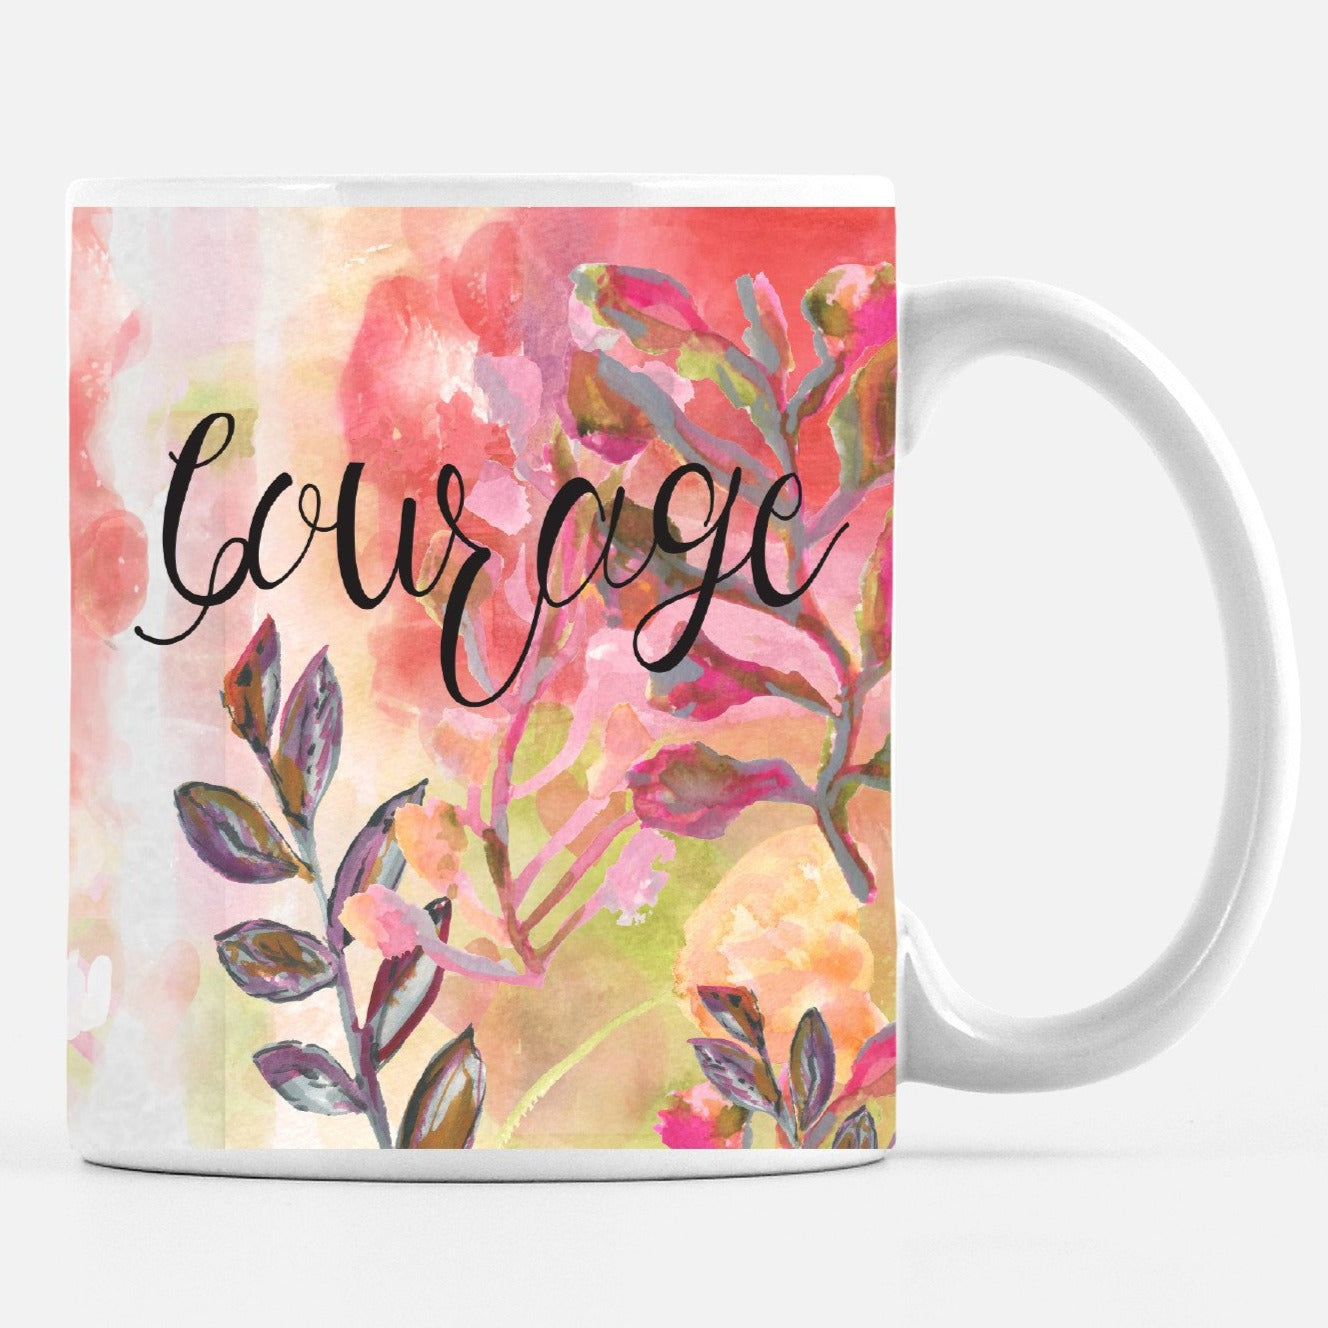 Mug : Courage - Dreams After All